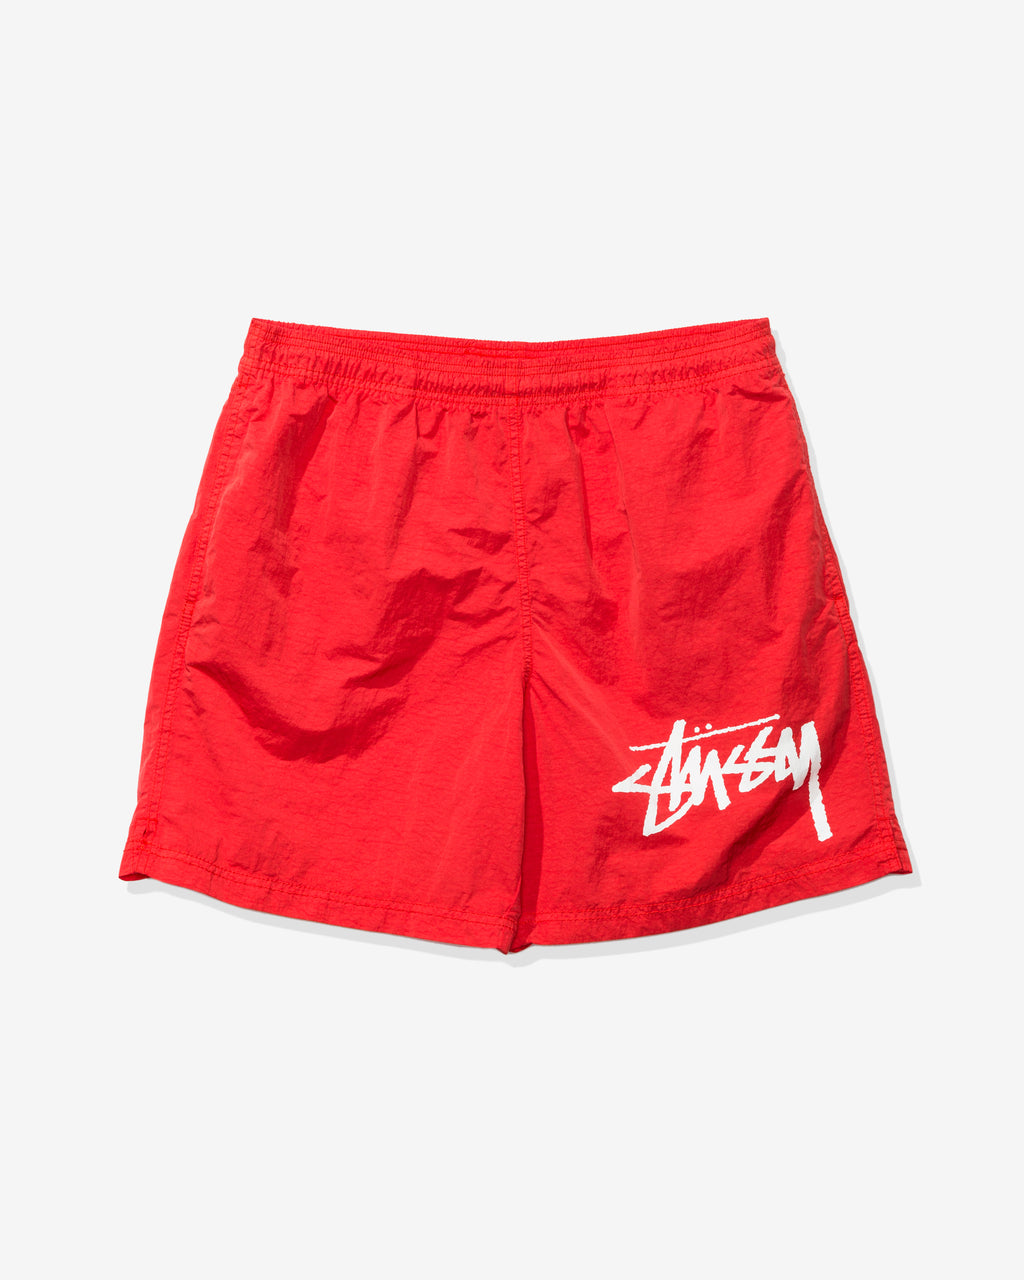 NIKE X STUSSY NRG BR WATER SHORT - HABANERORED